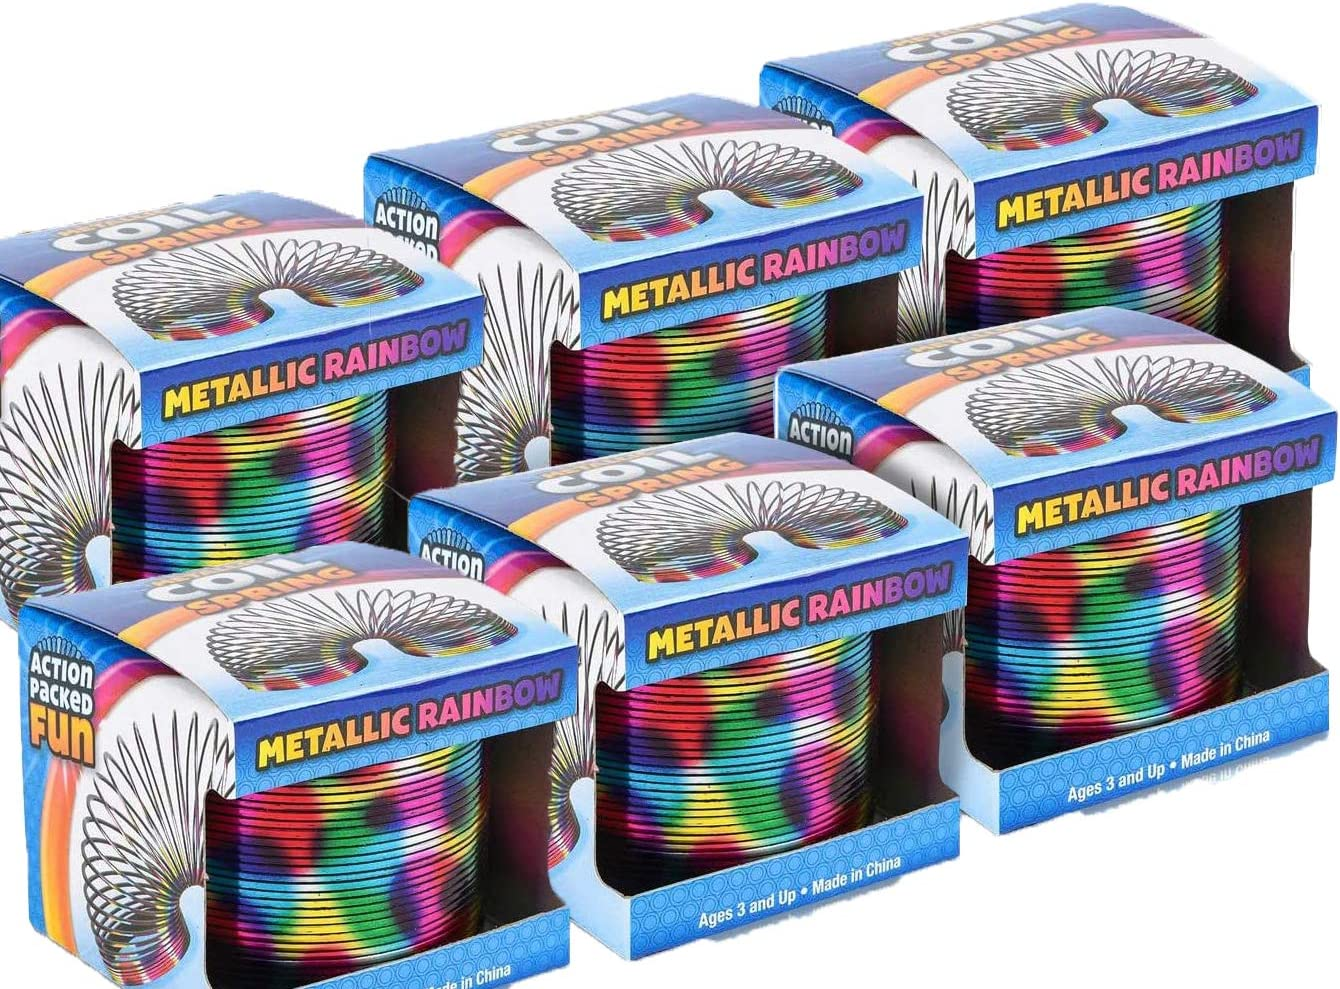 Plastic Rainbow Metallic Painted Slinkie Coil Springs Fun Birthday Party Favors for Boys and Girls for Kids Old School Retro Toys Set of 6 Goodie Bag Fillers